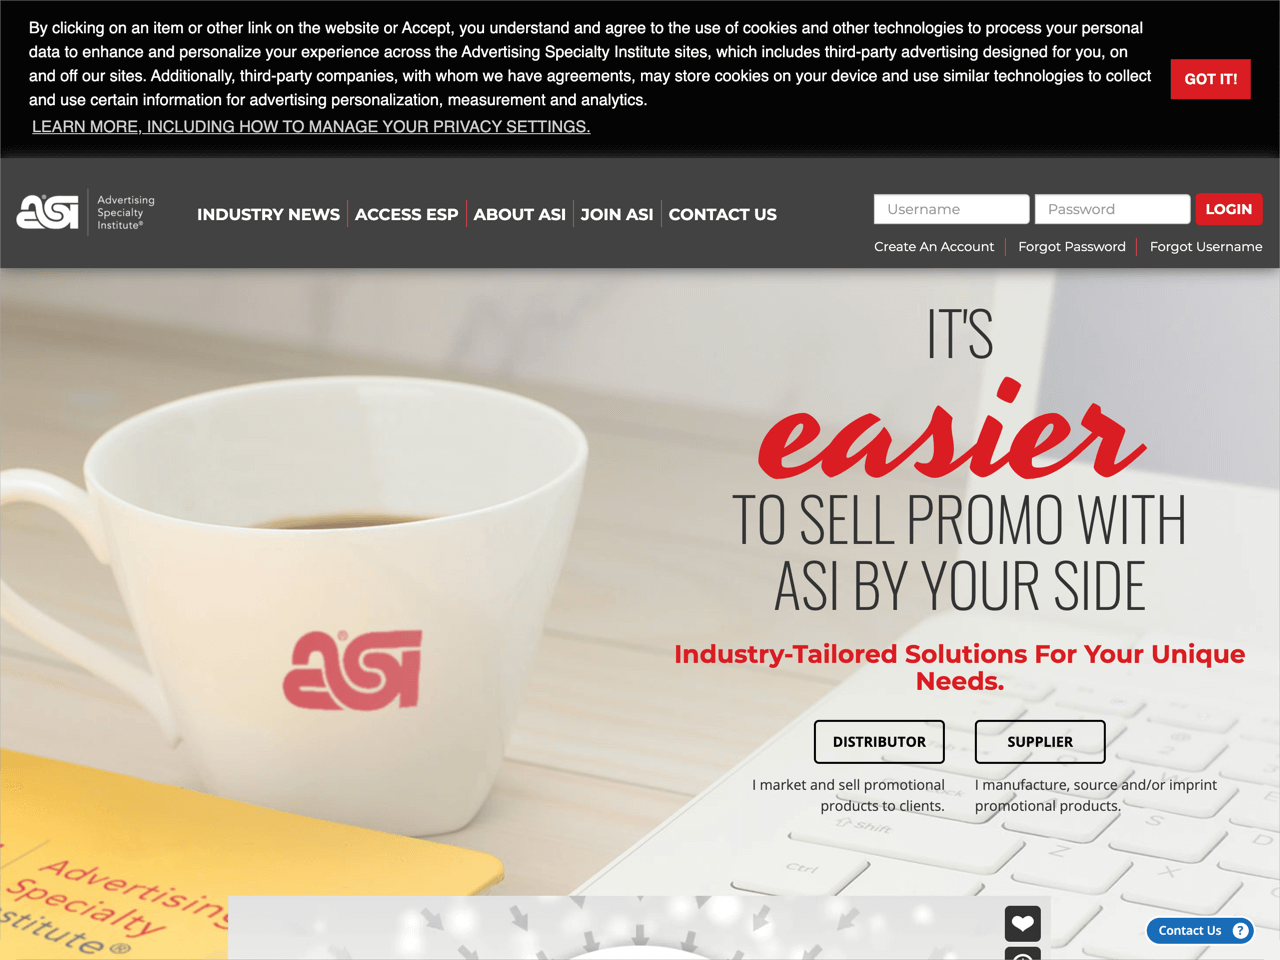 The ASI has placed their cookie banner at the top of a page